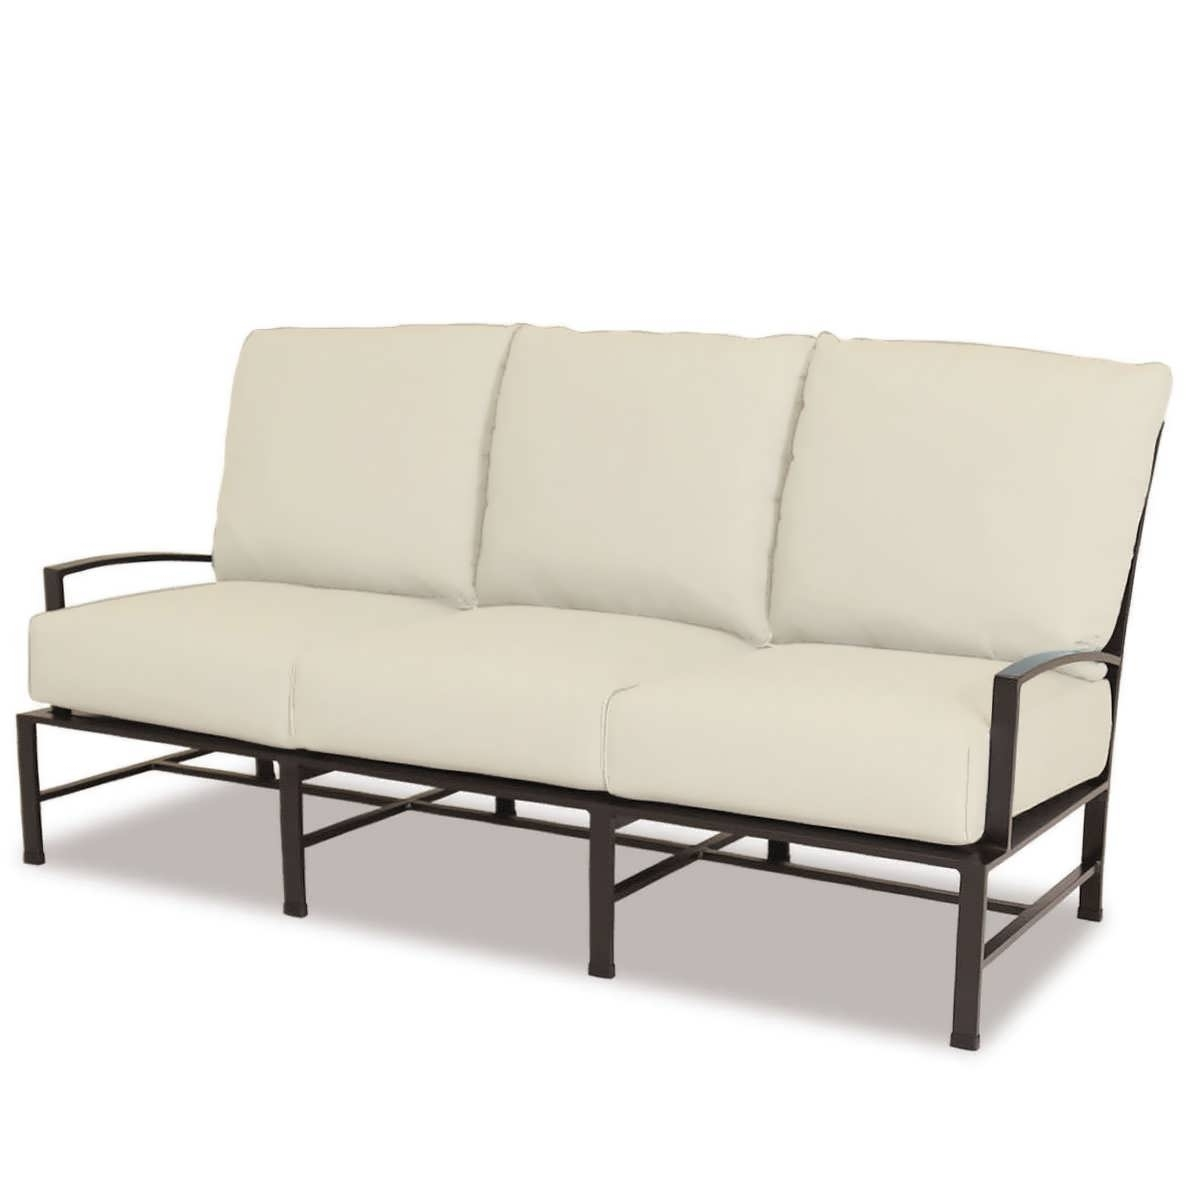 Chaise Couches In Popular Sofa : Leather Loveseat Couches And Sofas Sofa Couch Chaise Sofa (View 2 of 15)